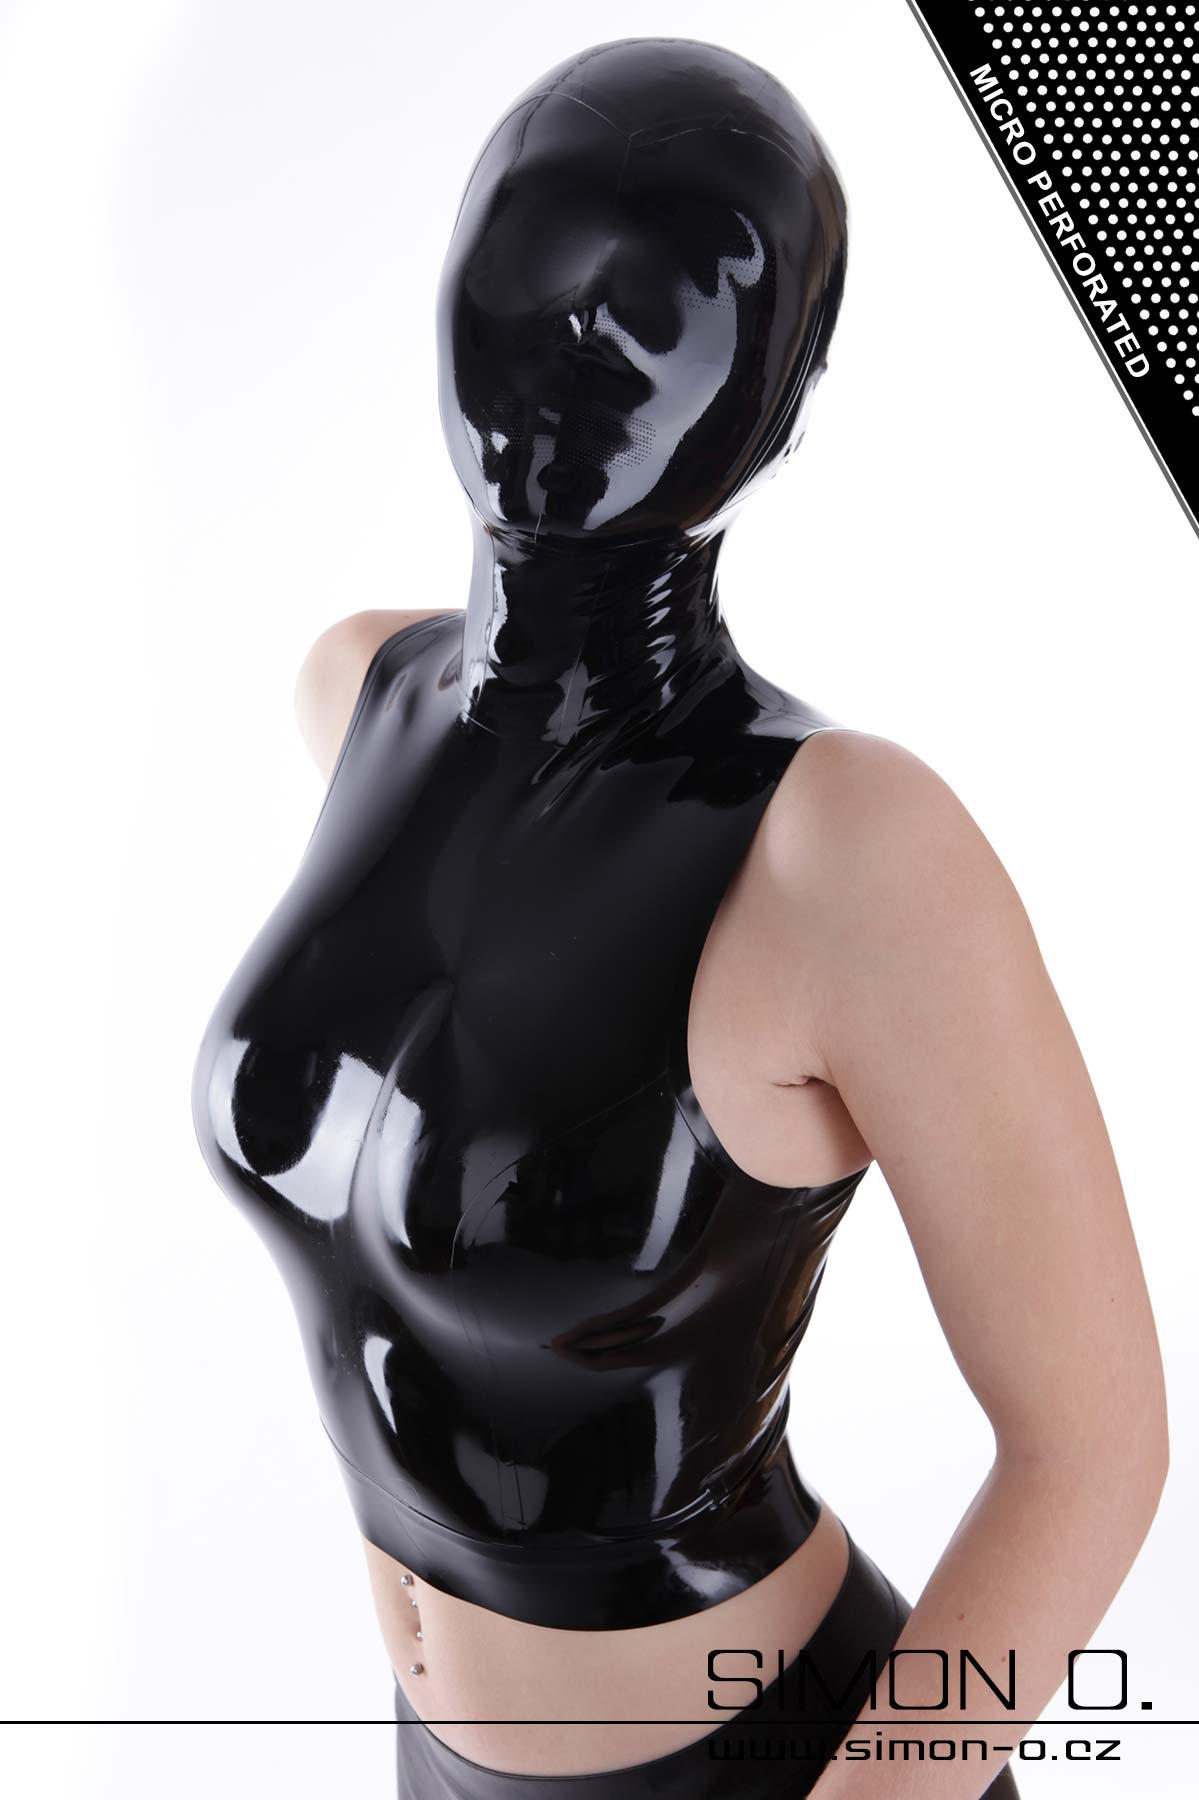 A woman wears a latex top with a latex hood in black. The hood has many small holes in the eyes and mouth.